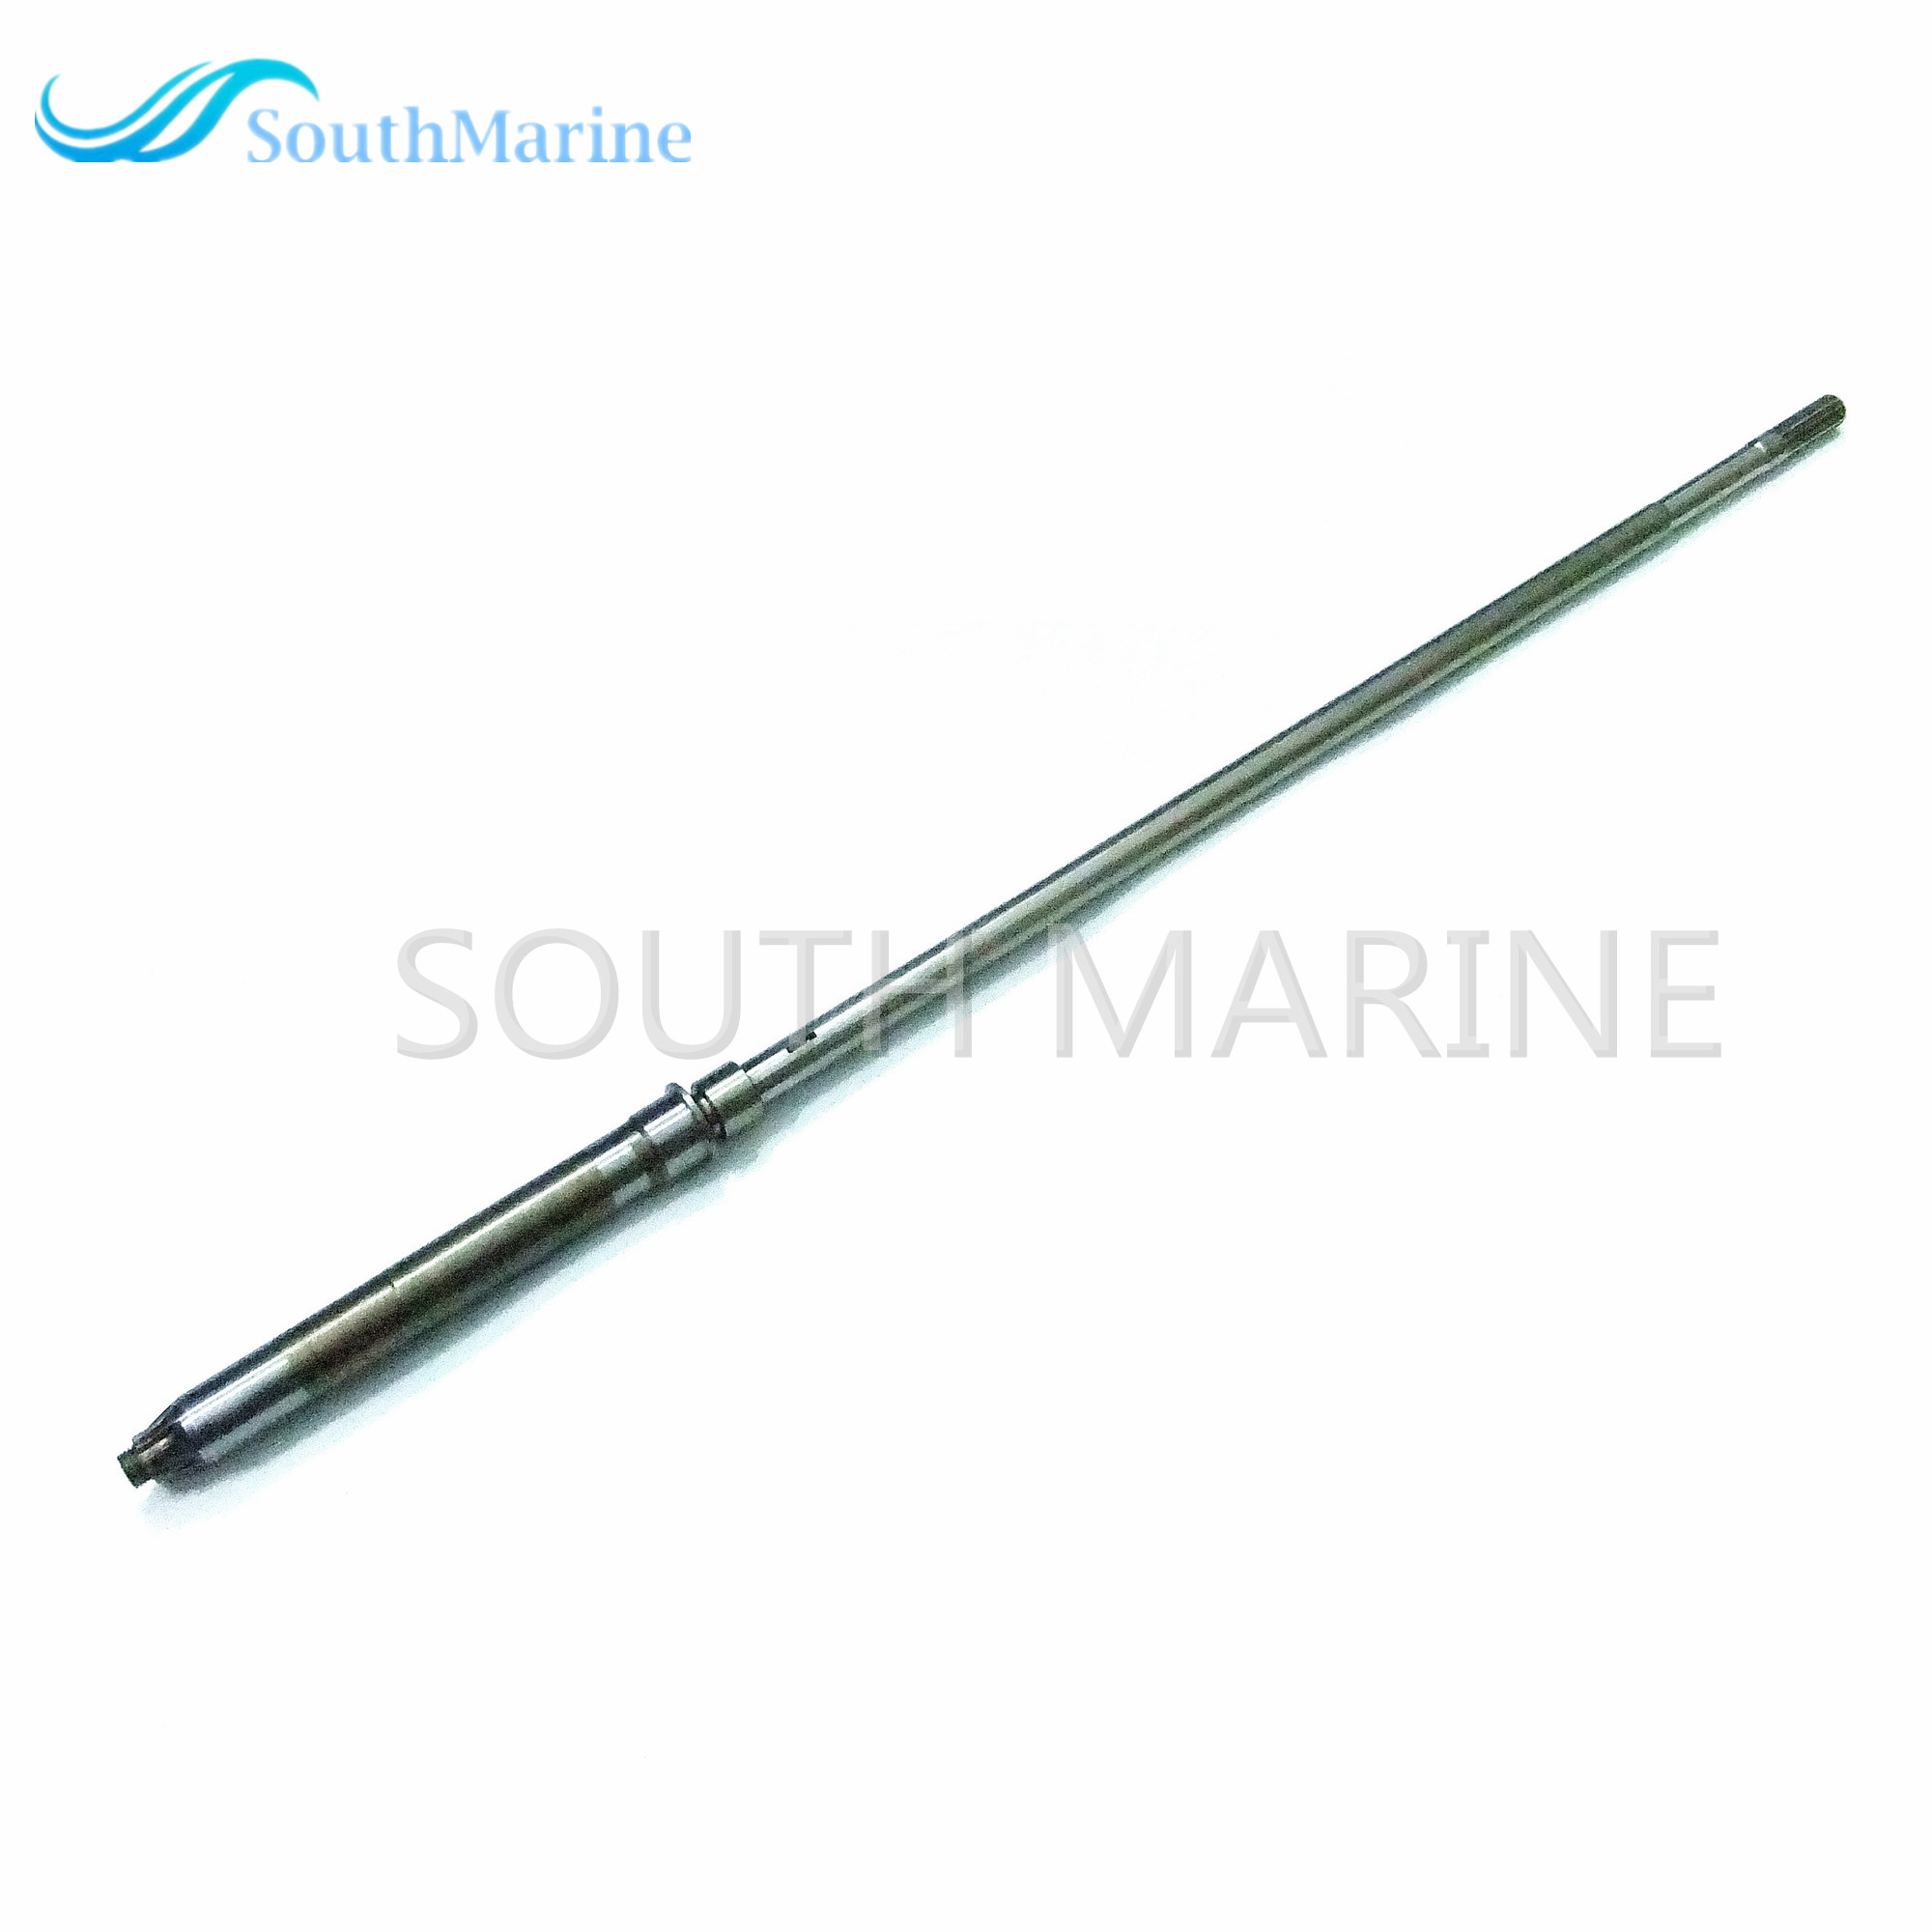 Boat Motor T40-04010000 Long Drive Shaft for Outboard Engine Parsun 2-Stroke T40 Free Shipping